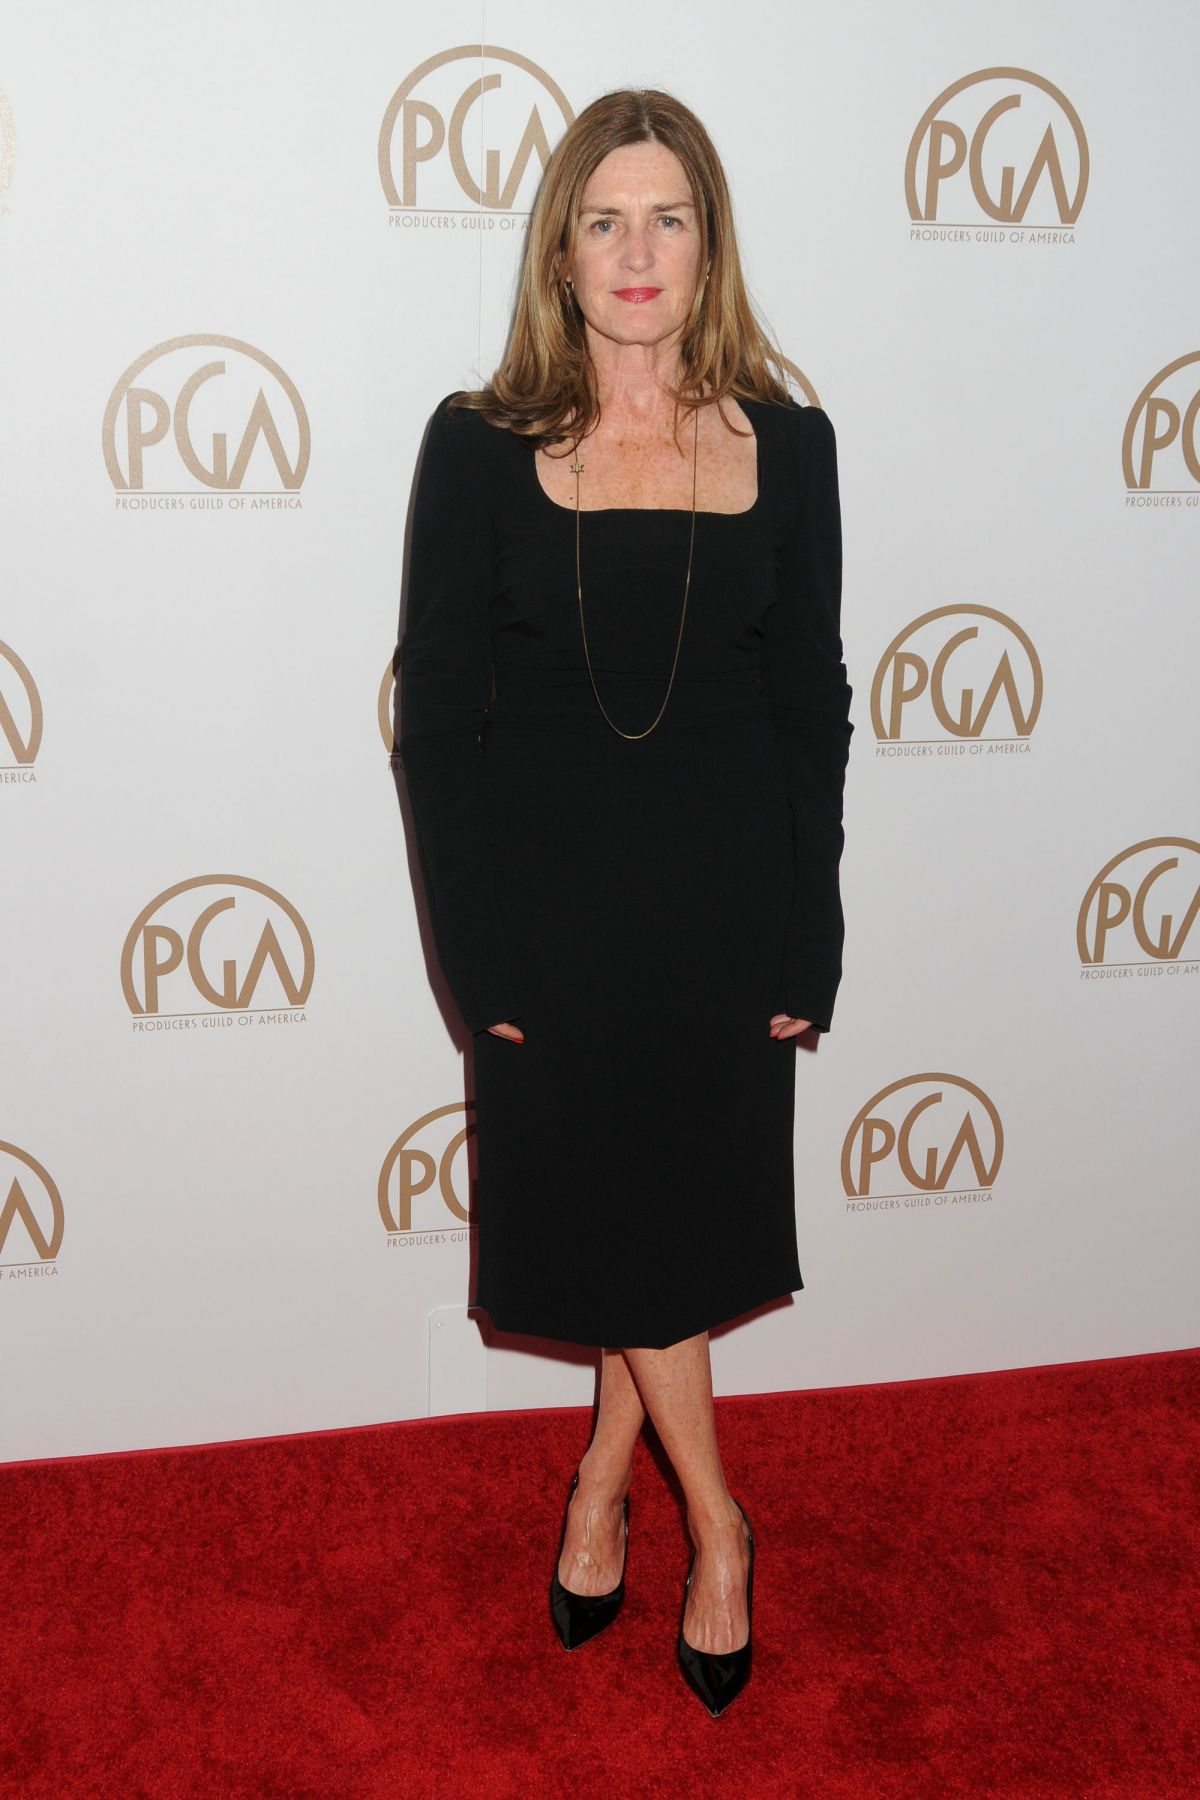 FINOLA DWYER at 27th Annual Producers Guild Awards in Los Angeles 01/23/2016